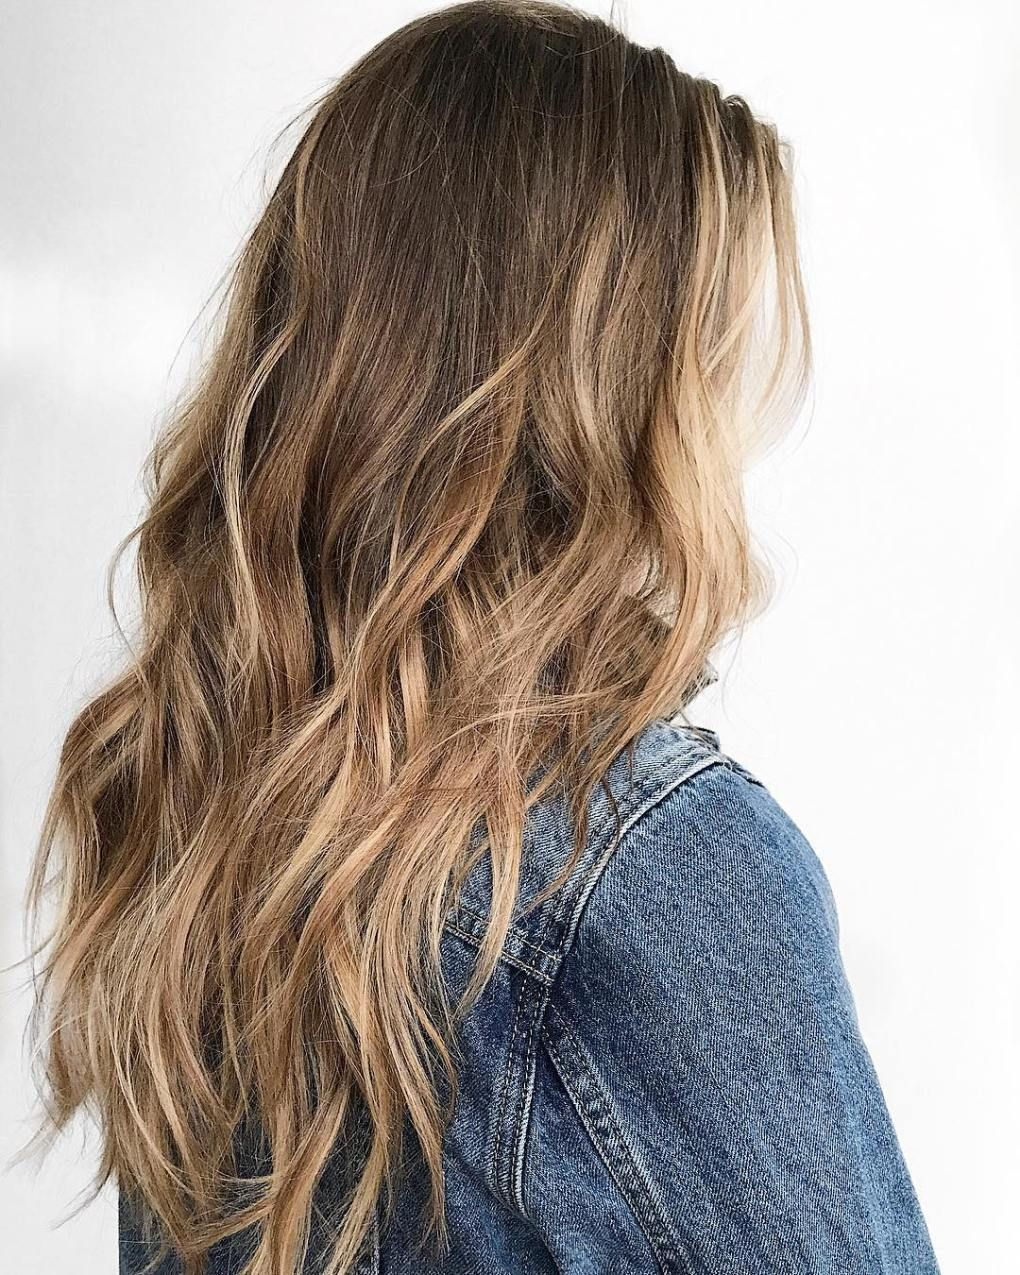 20 Dirty Blonde Hair Ideas That Work on Everyone in 2019 ...